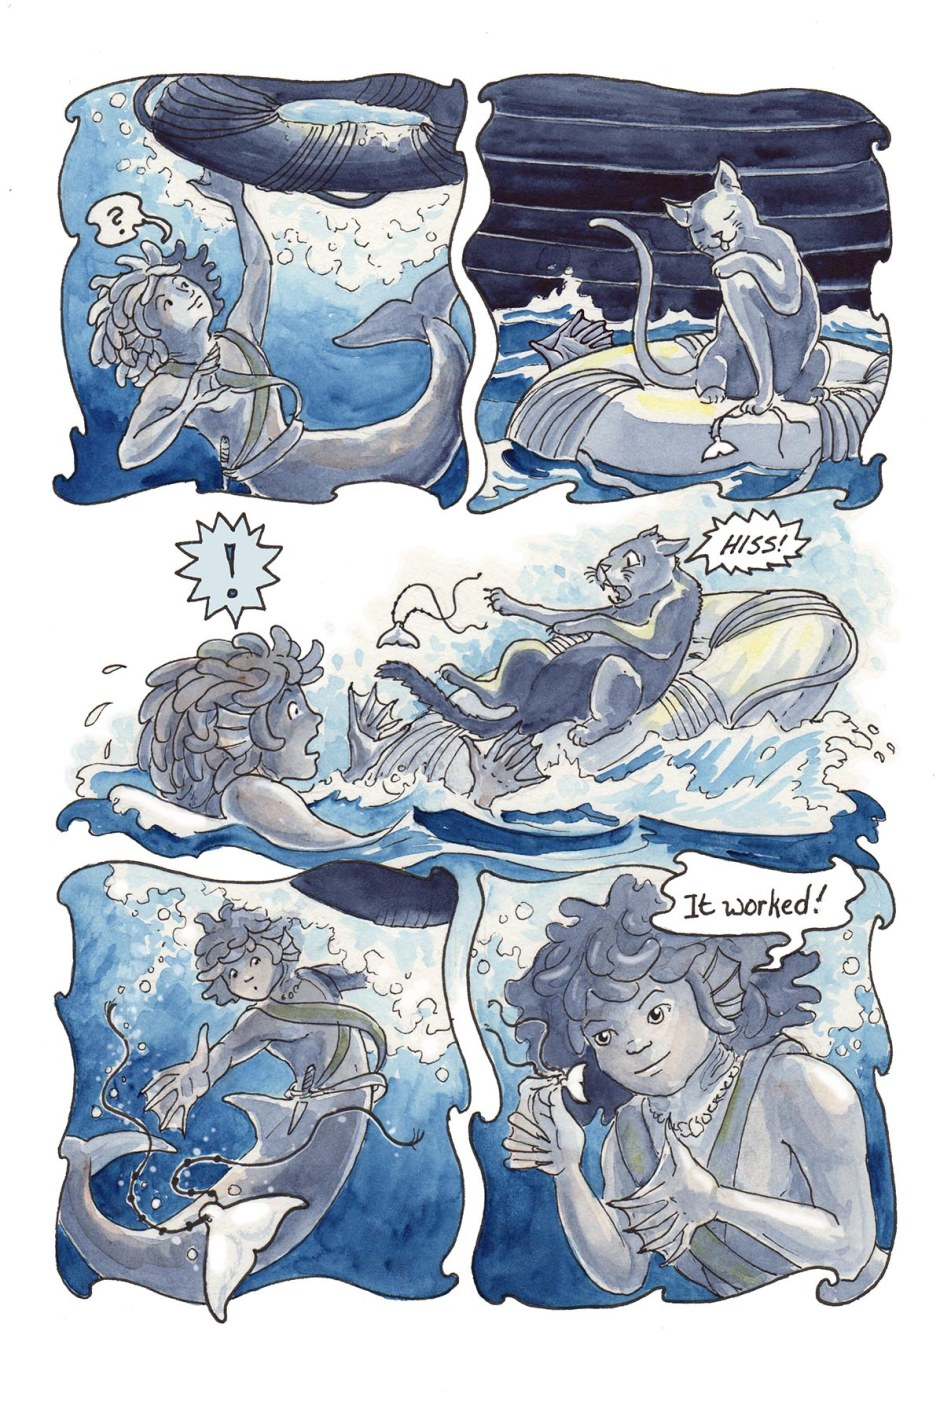 Page 65 — Gull's catch of the day!